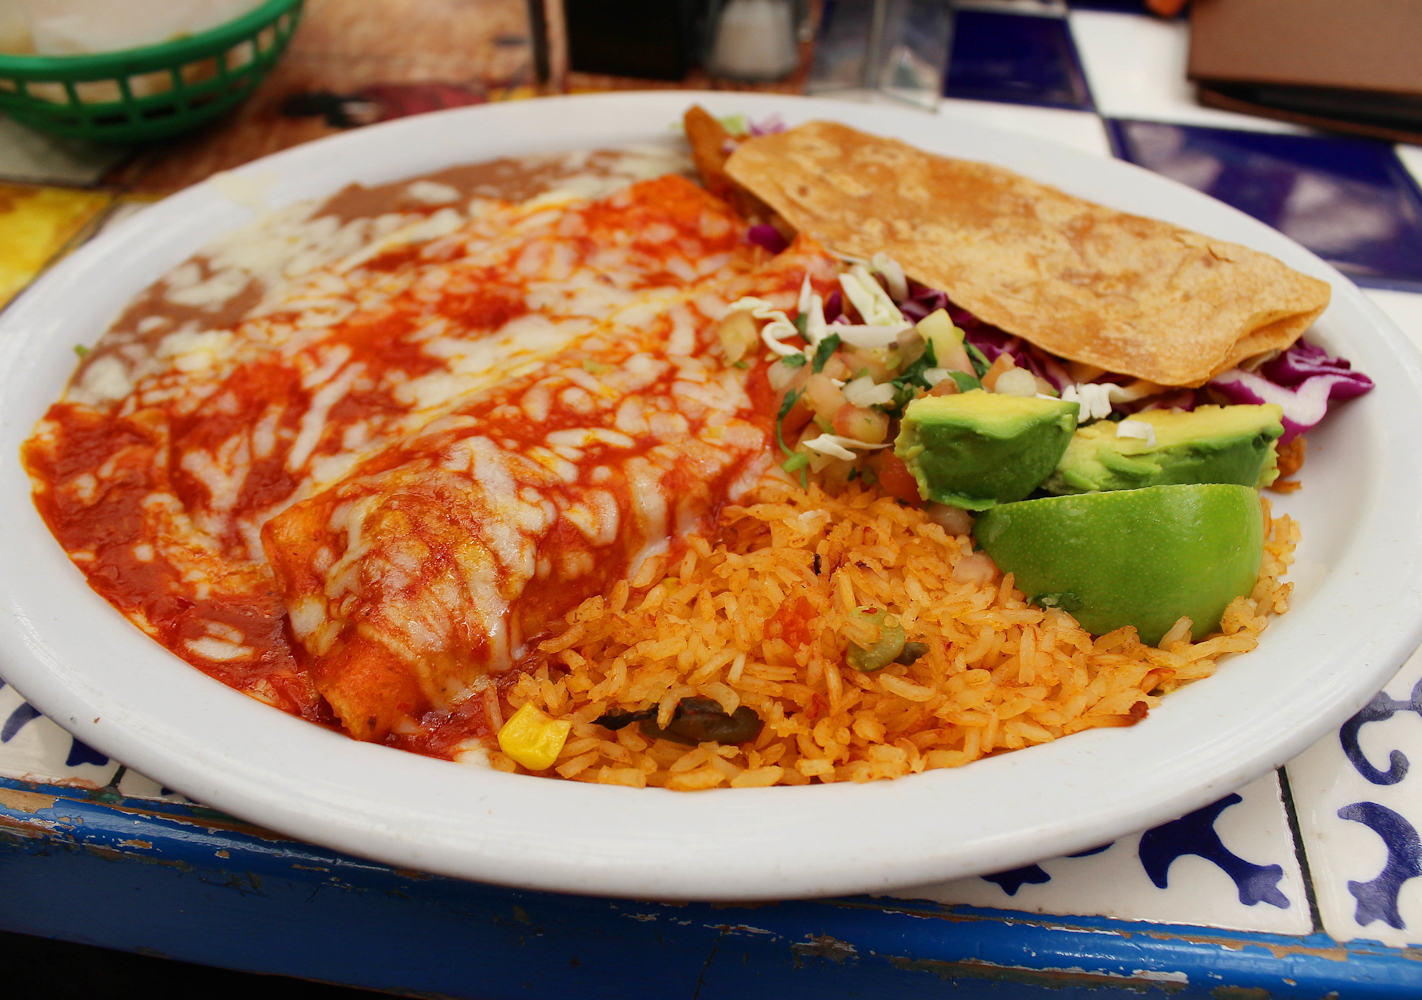 From enchiladas to tostadas, a little bit of Tex in Mex food makes it an all-American meal.